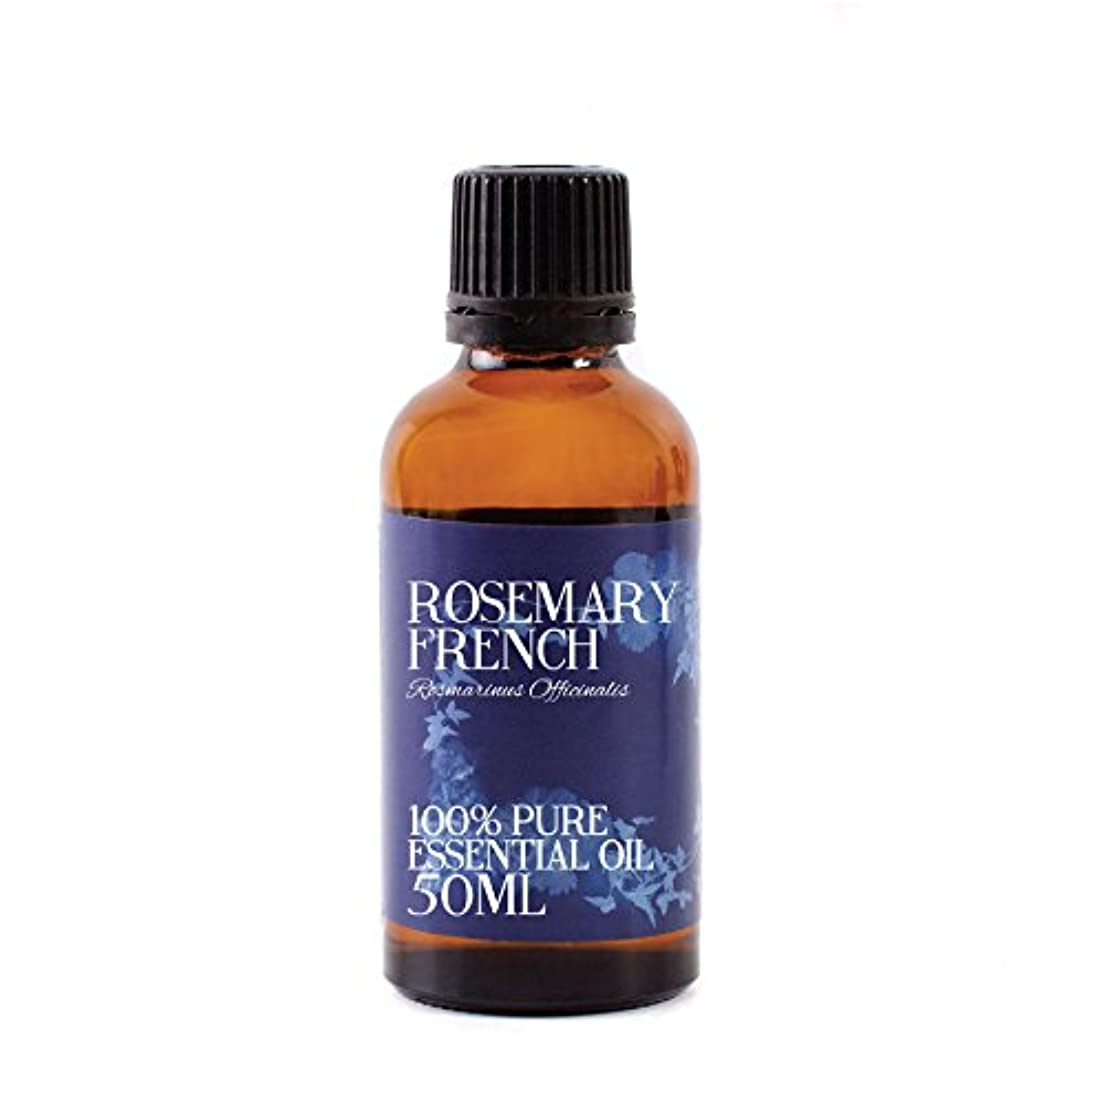 Mystic Moments | Rosemary French Essential Oil - 50ml - 100% Pure